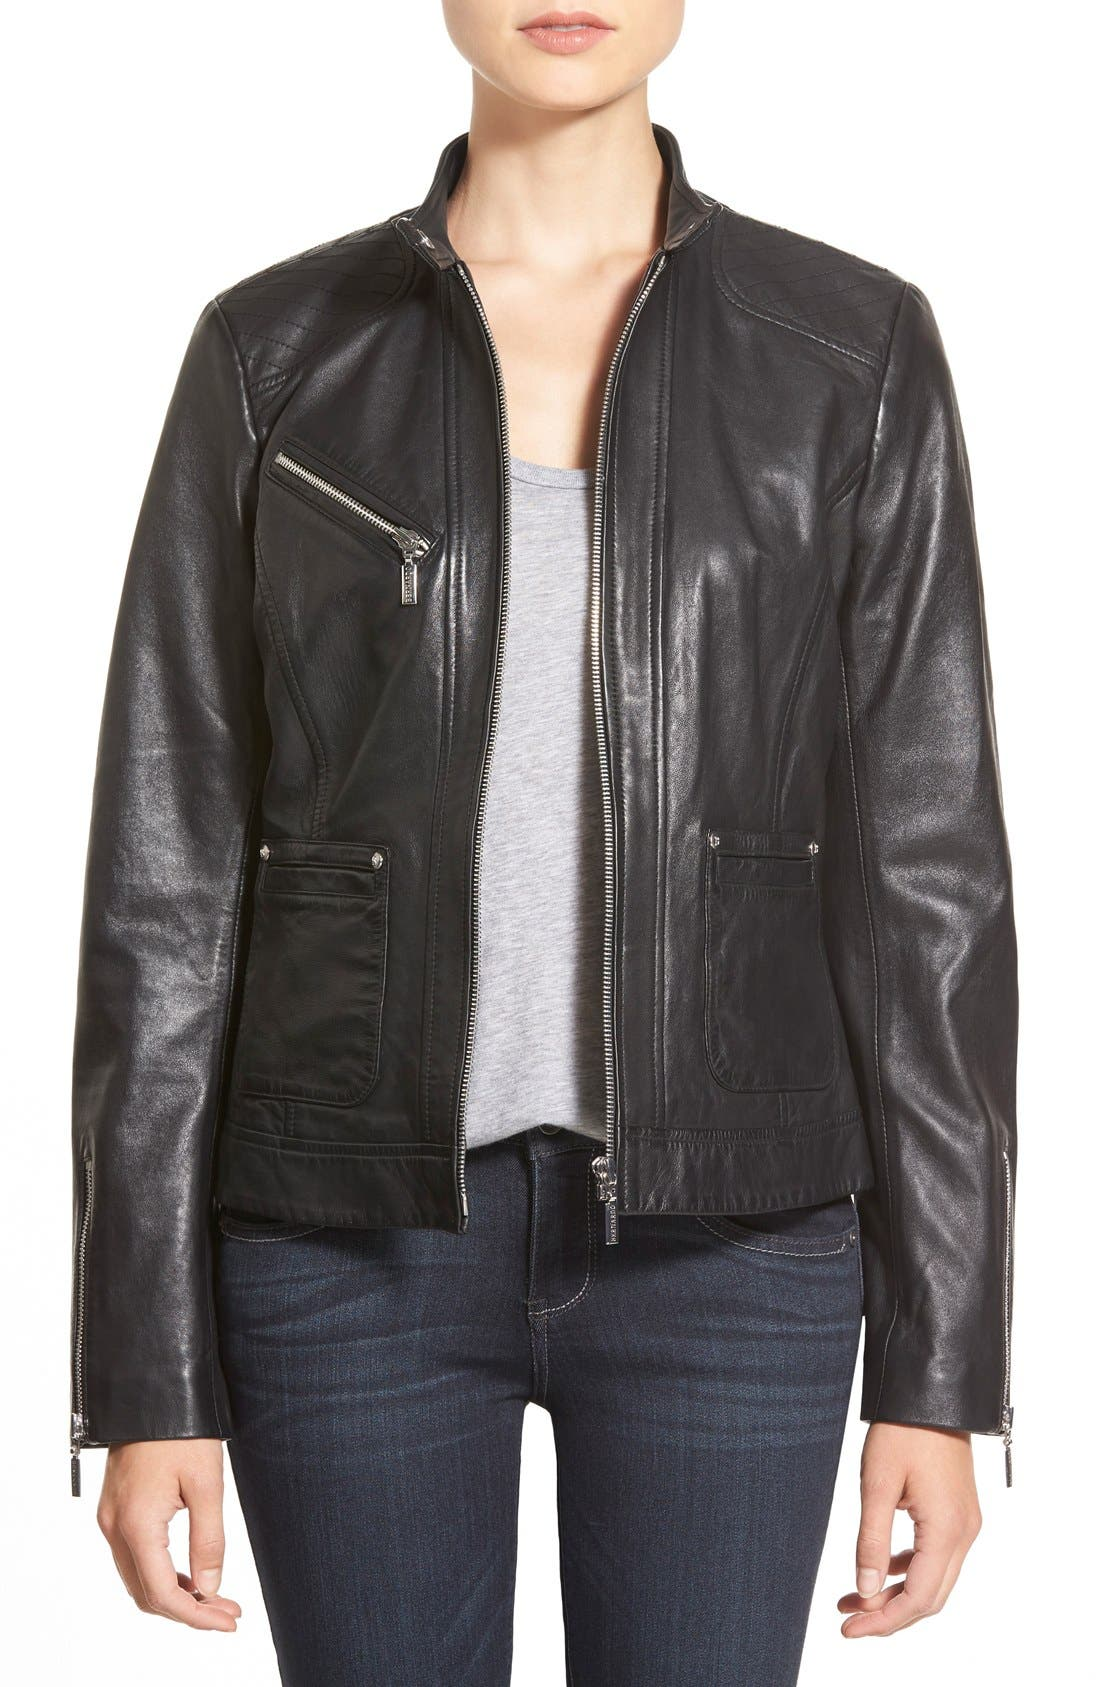 Alternate Image 1 Selected - Bernardo Zip Front Leather Jacket (Regular & Petite)